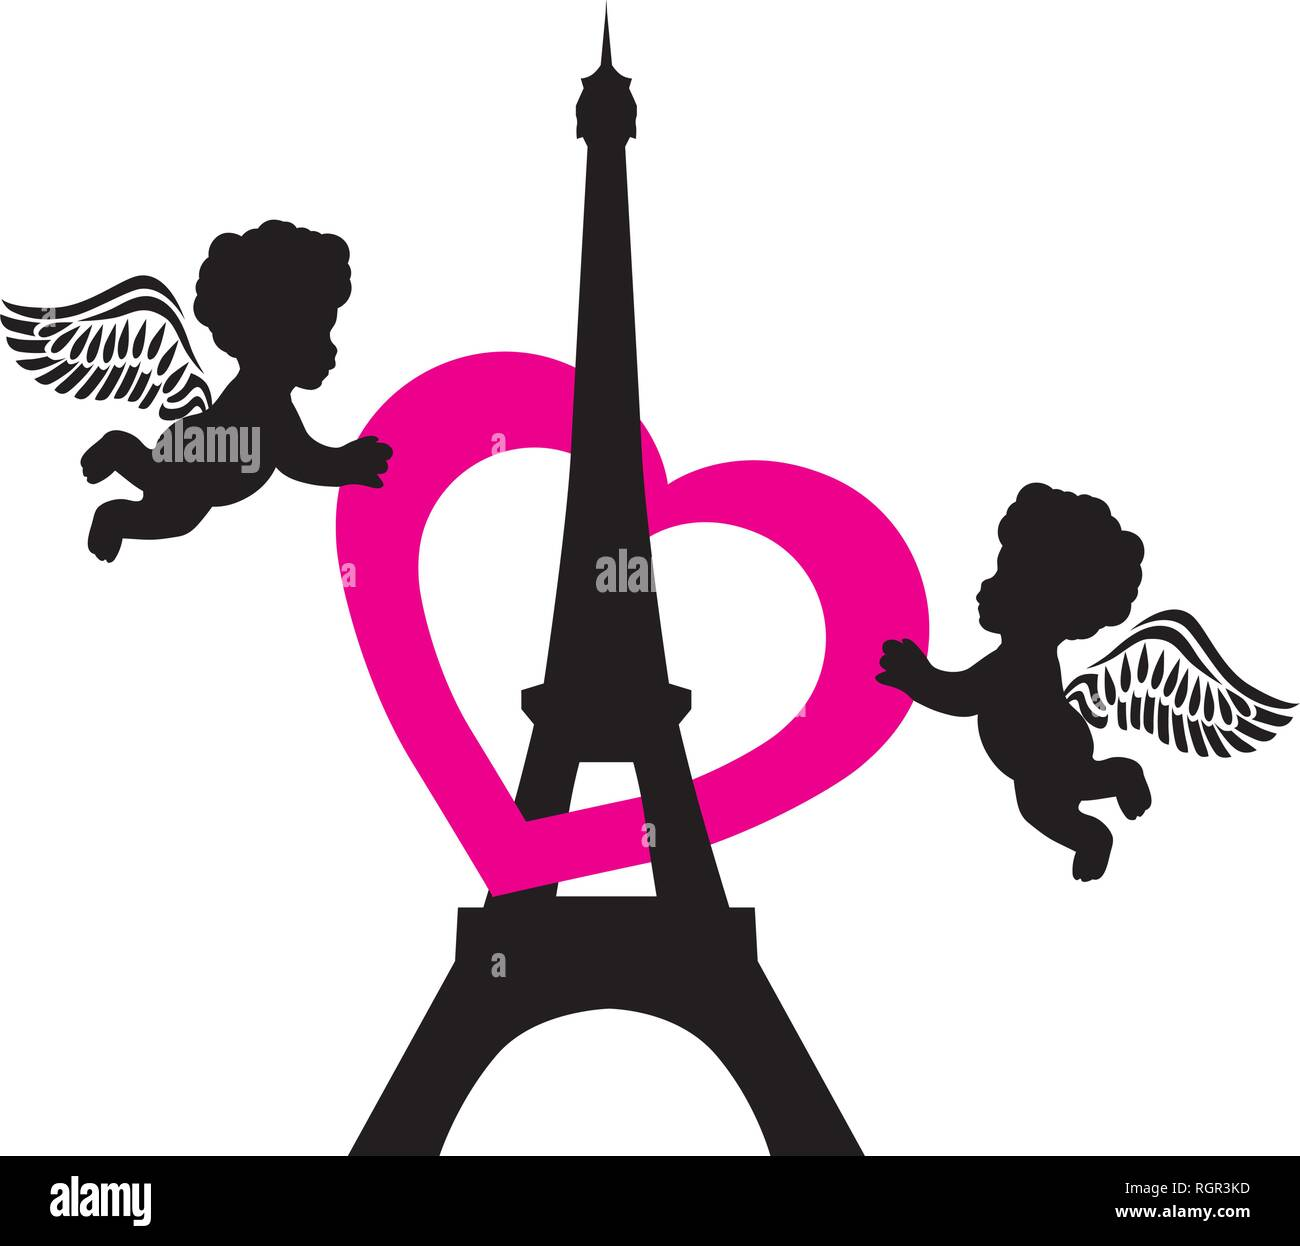 Eiffel Tower Logo High Resolution Stock Photography And Images Alamy